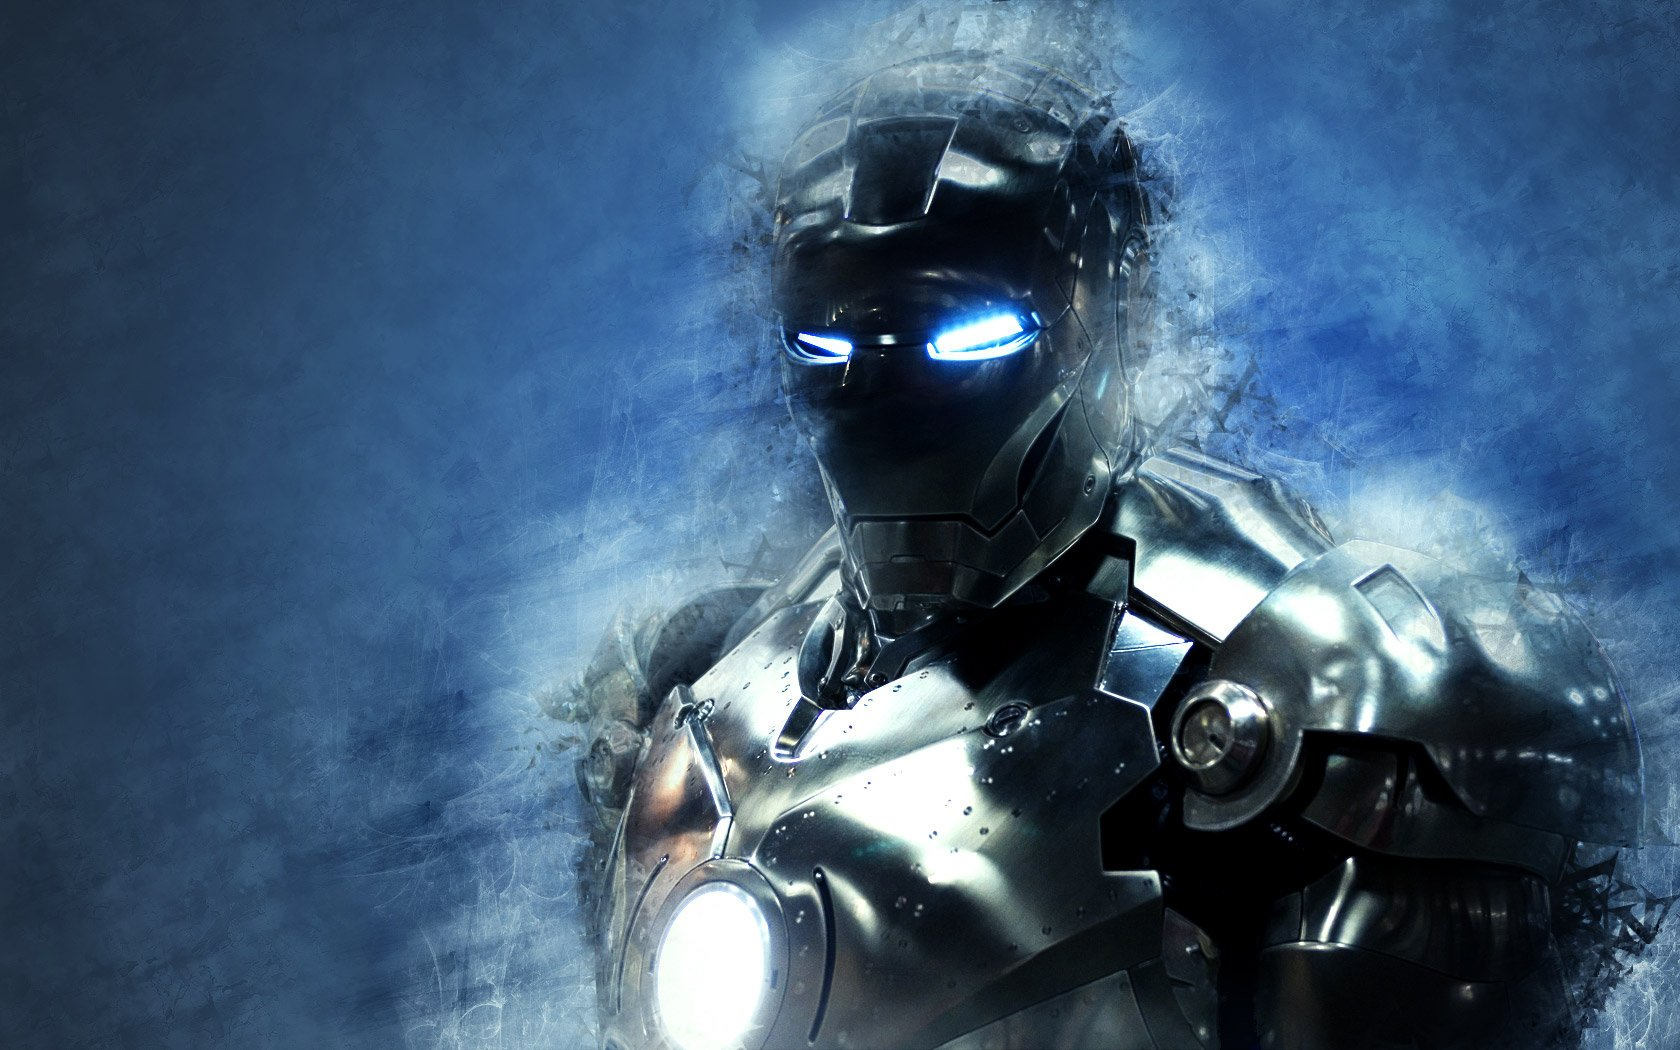 Ironman wallpaper by BordomBeThyName 1680x1050